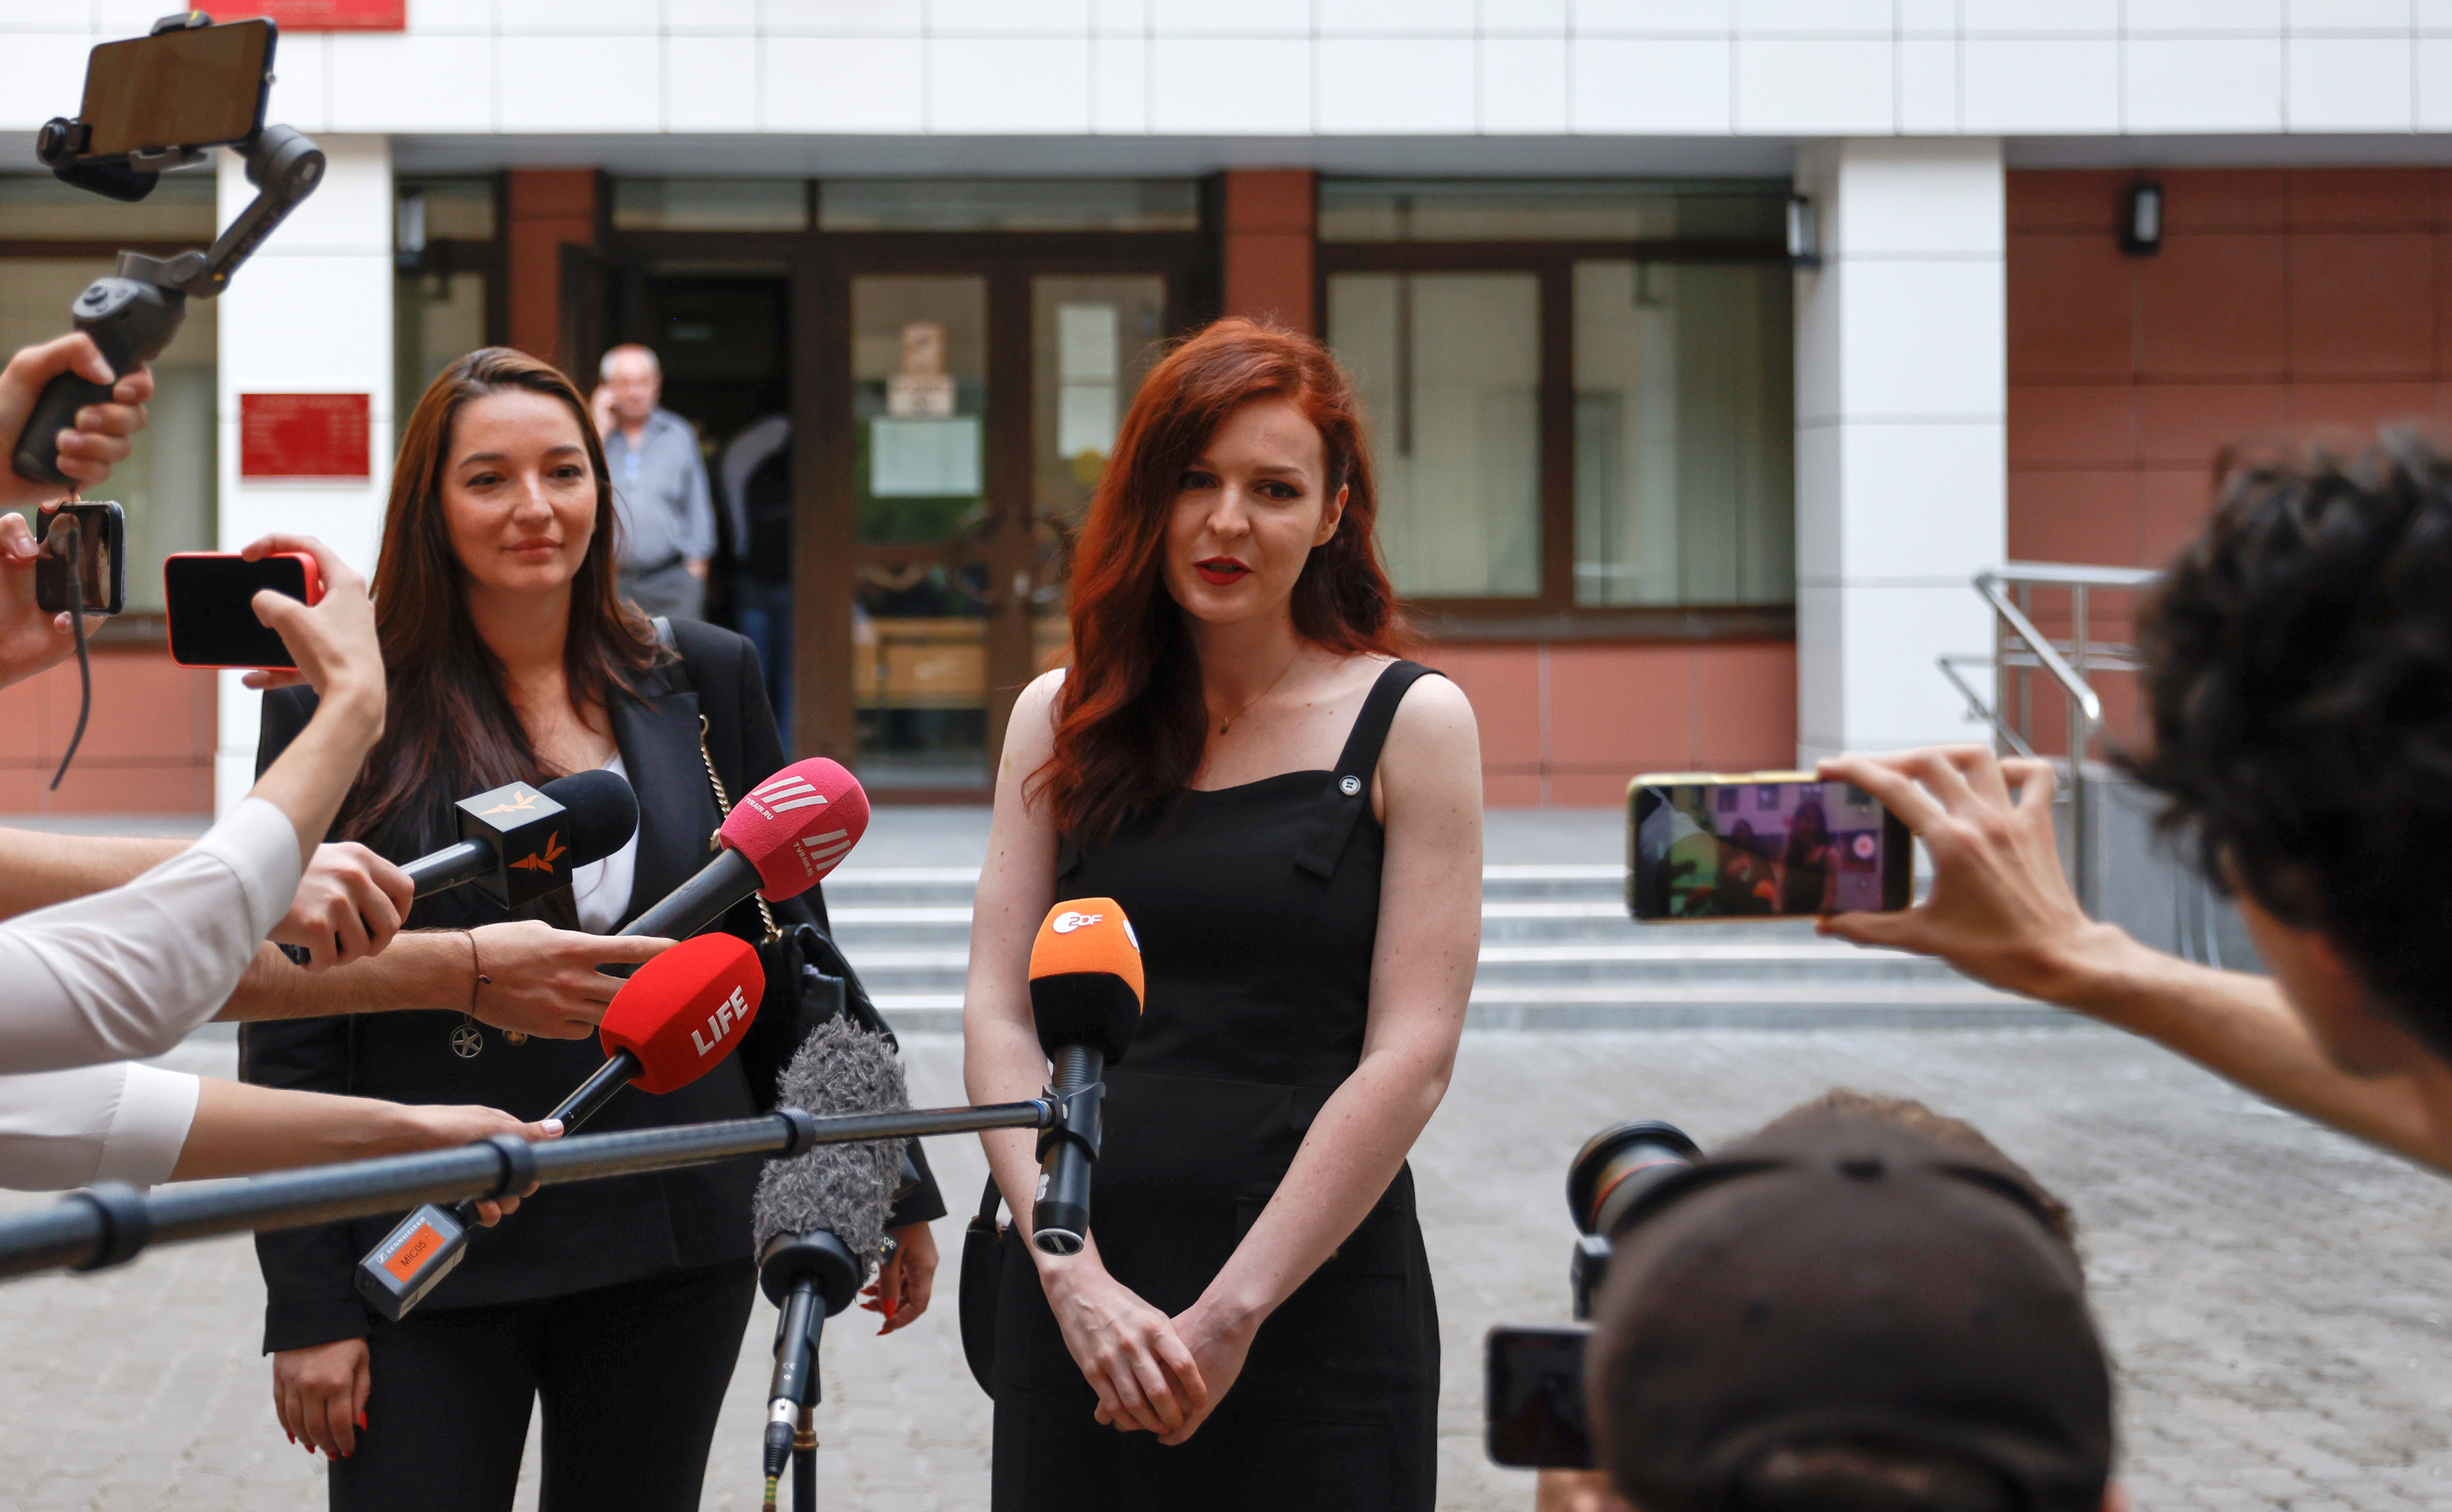 Kremlin critic Alexei Navalny's spokesperson Kira Yarmysh accused of breaching COVID-19 safety regulations speaks with journalists after a court hearing in Moscow, Russia August 16, 2021. REUTERS/Evgenia Novozhenina